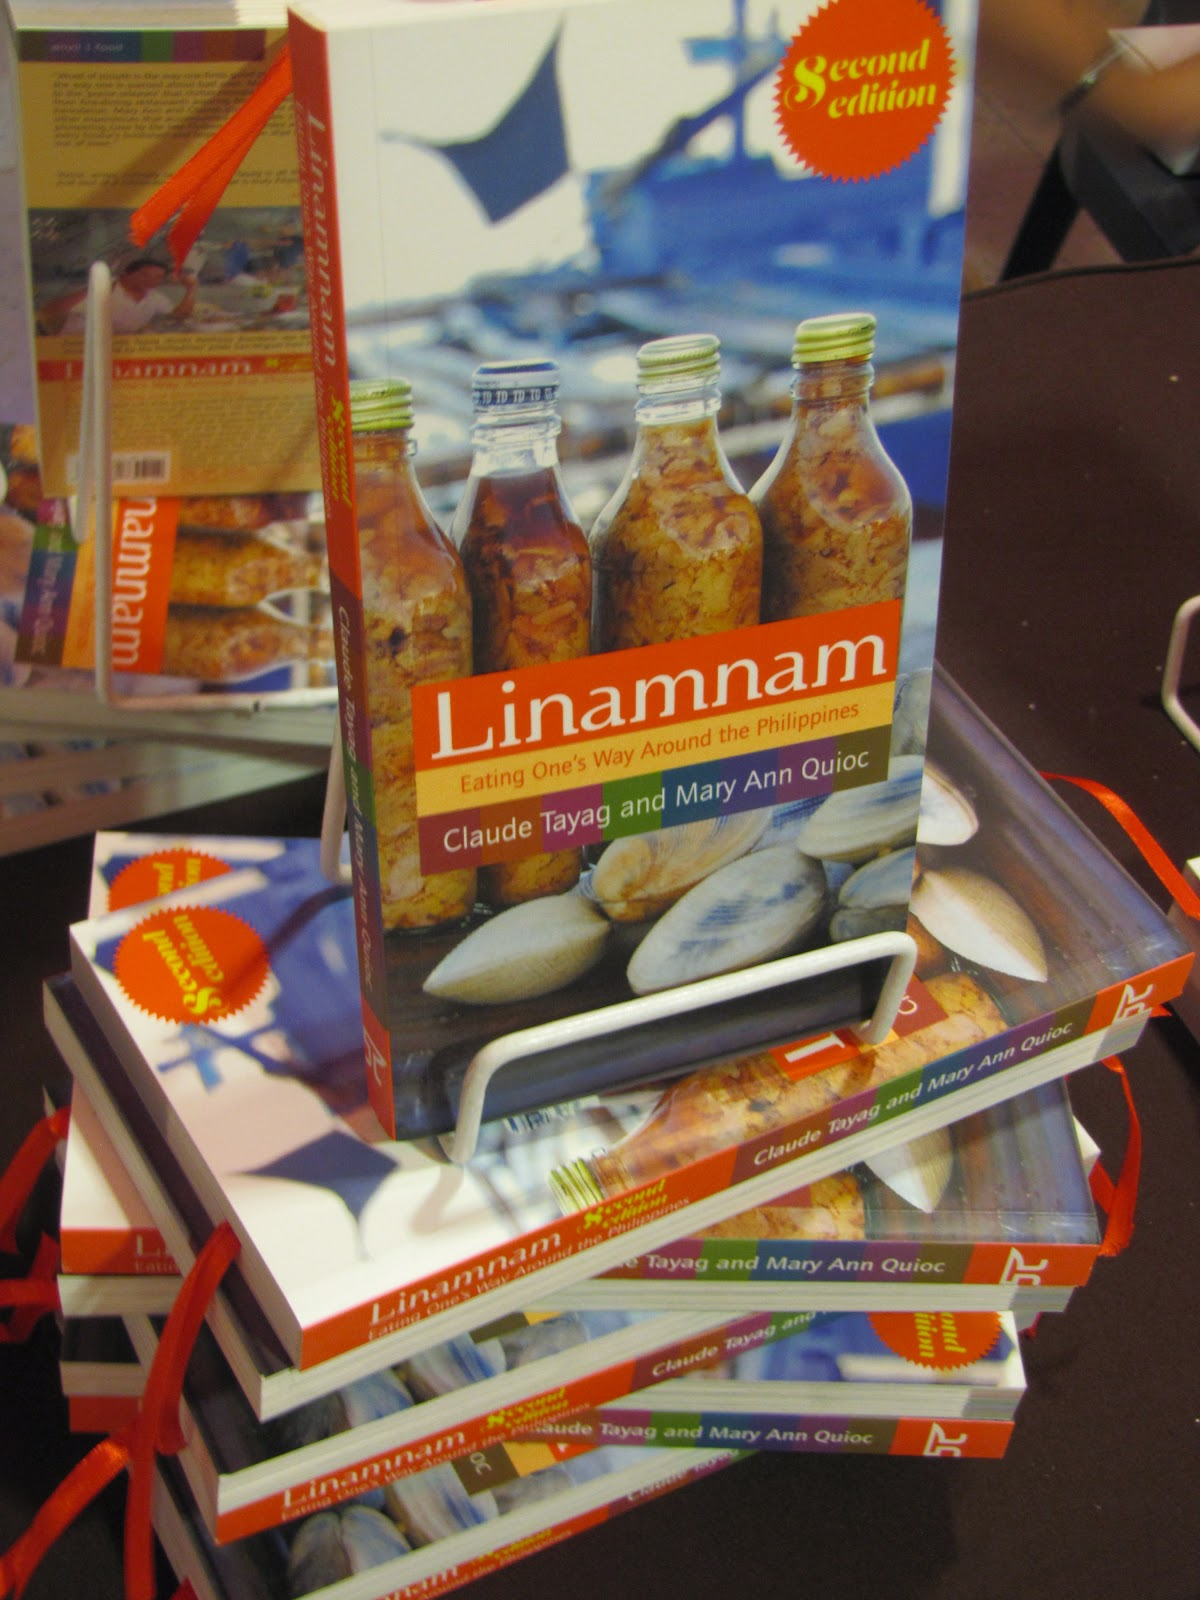 FTW! Blog, Linamnam Second Edition, Book Launch